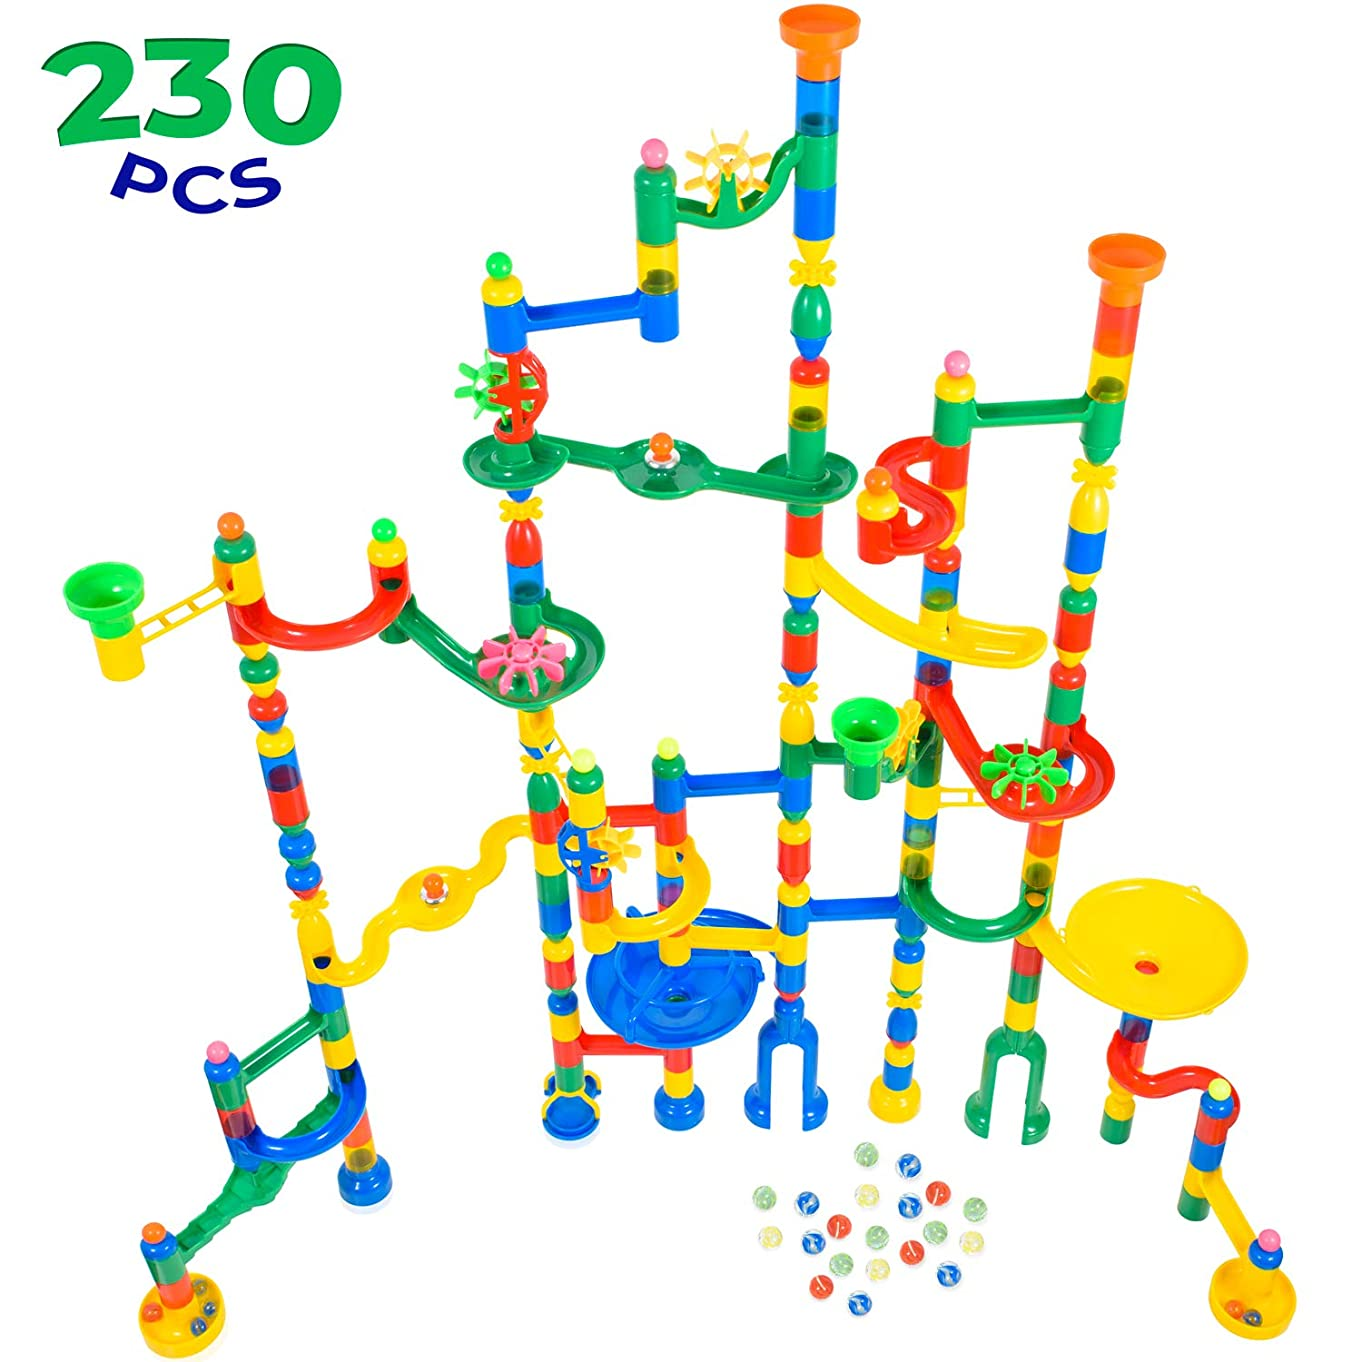 MagicJourney Giant Marble Run Toy Track Super Set Game I 230 Piece Marble Maze Building Sets w/ 200 Colorful Marble Tracks, 30 Marbles & 4 Challenge Levels for STEM Learning, Endless Educational Fun k35563986